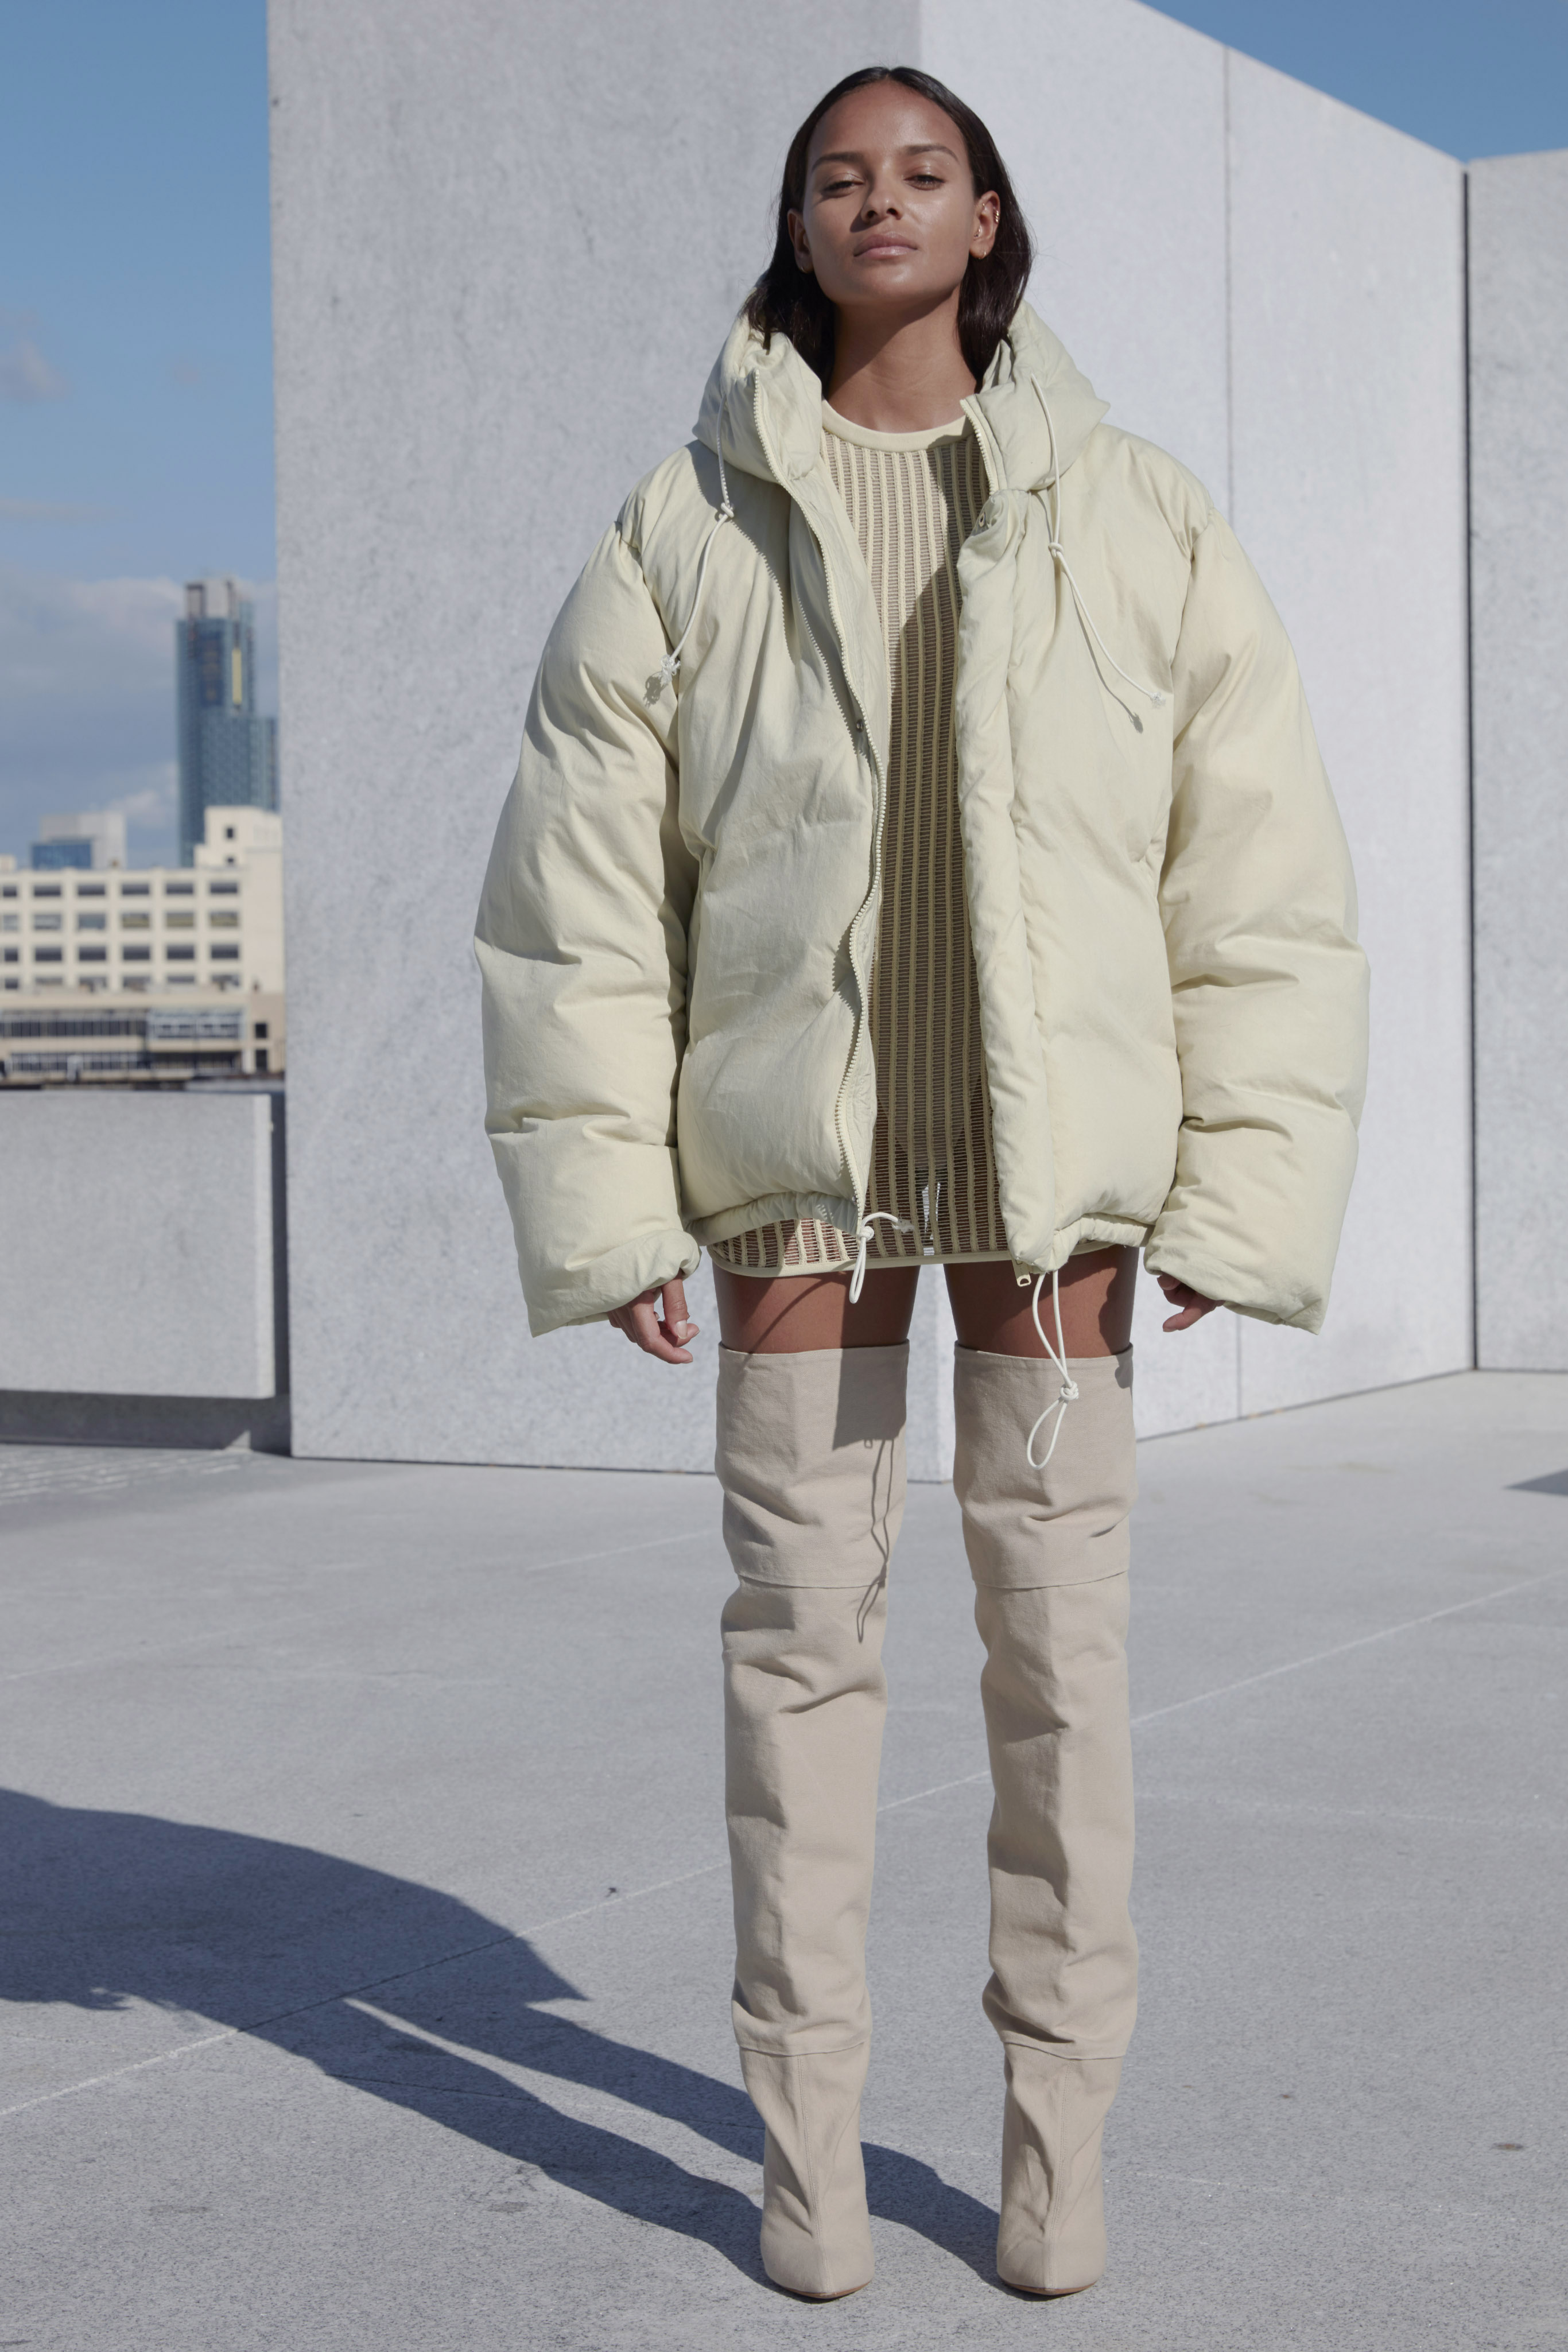 Image result for yeezy inspired outfits